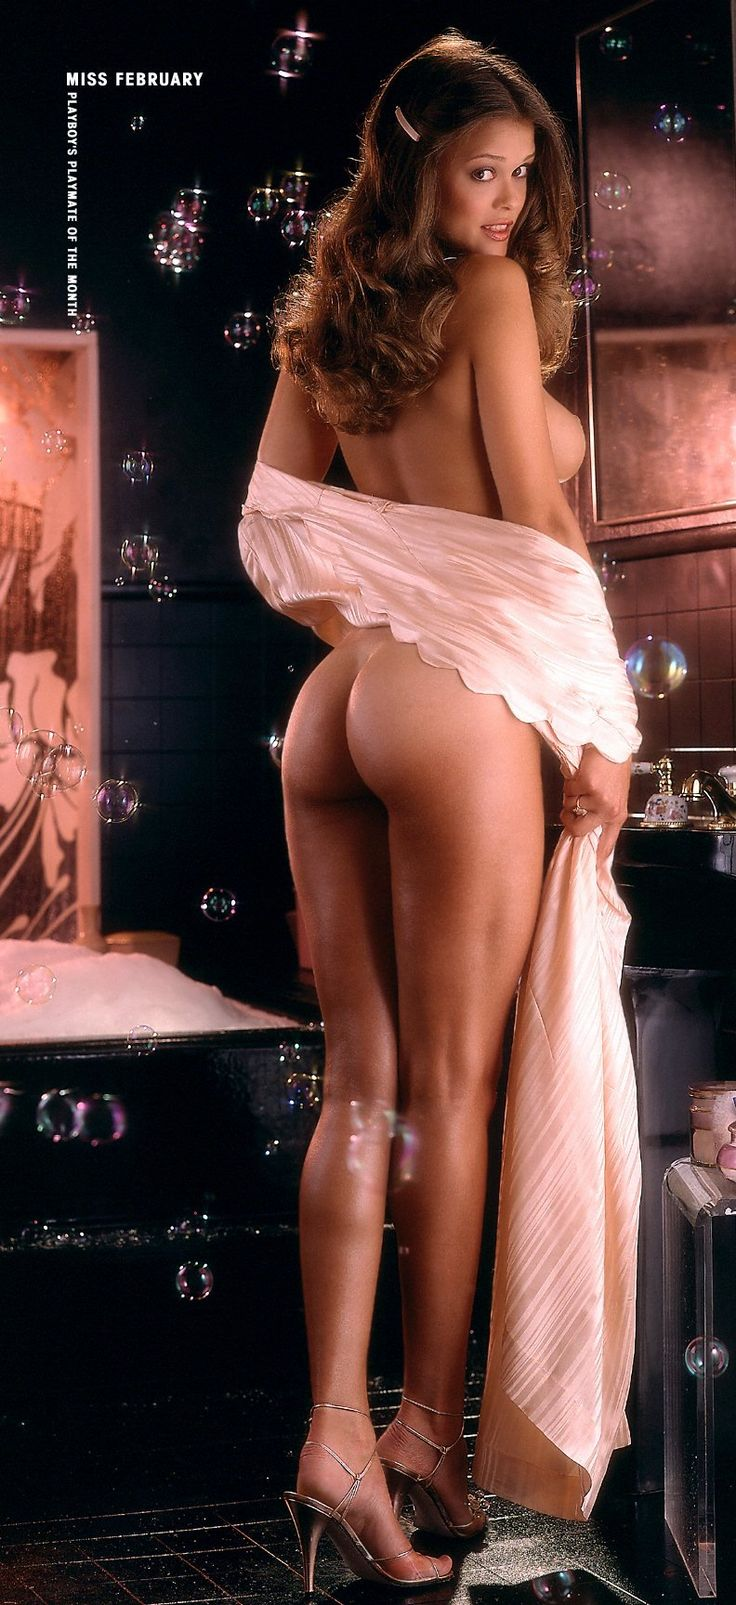 122 best playboy centerfold 1980-1989 images on pinterest | playboy